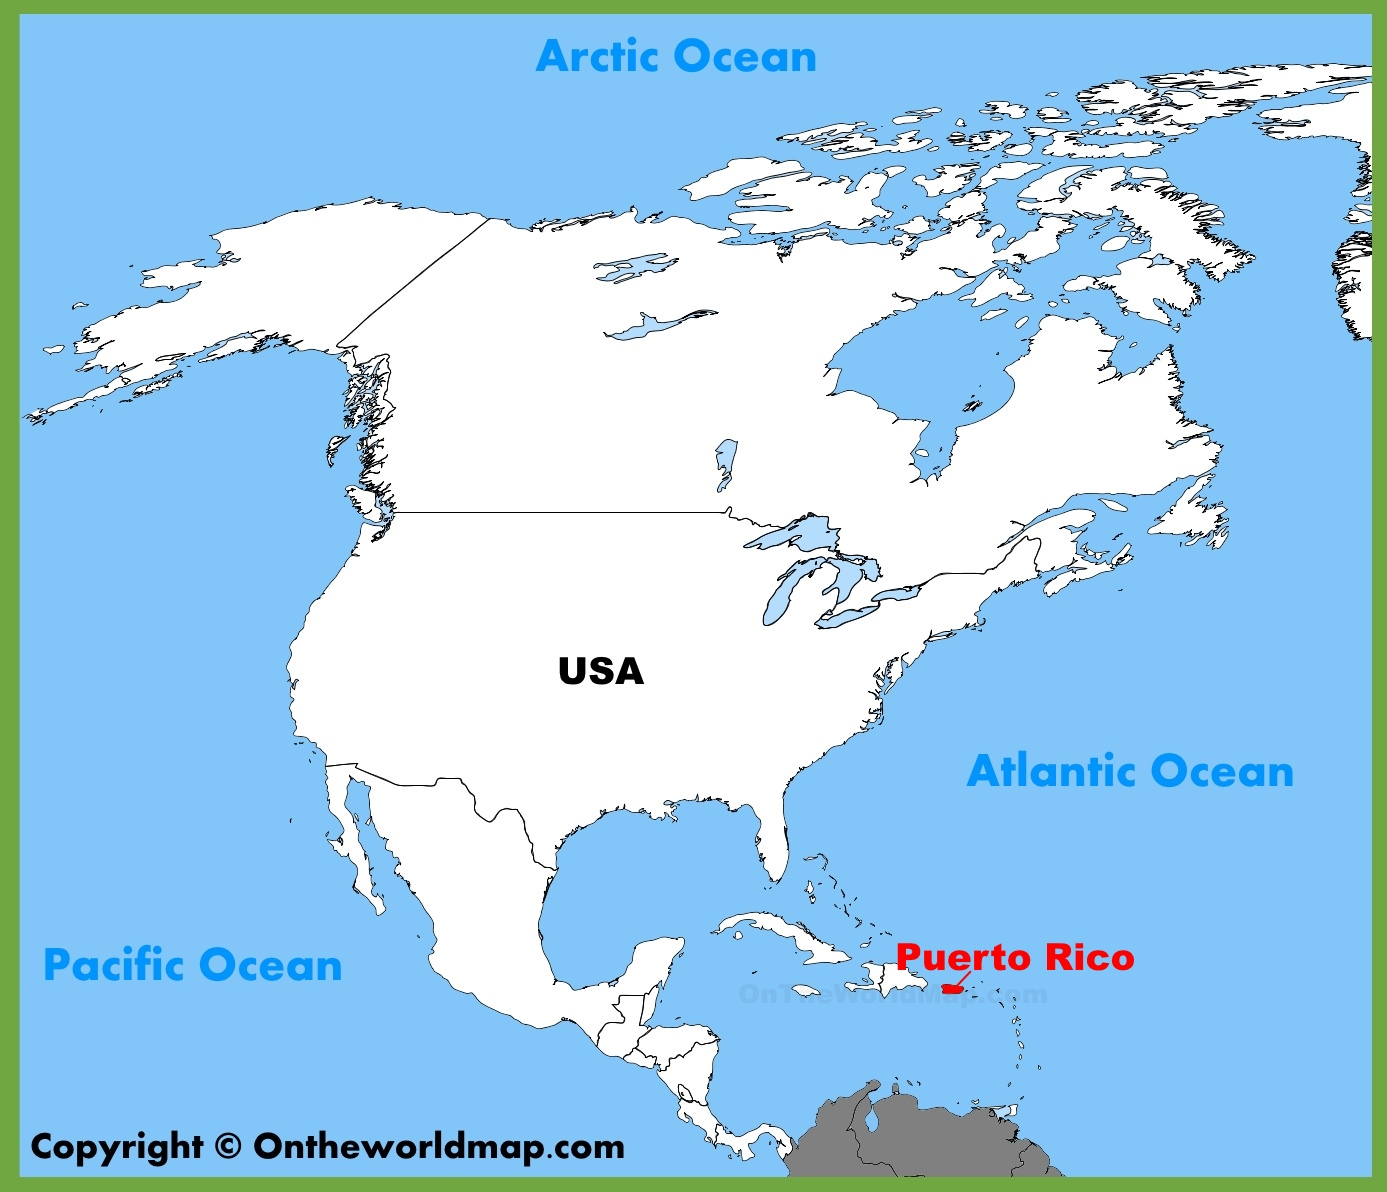 Where Is Puerto Rico On The Map Puerto Rico location on the North America map